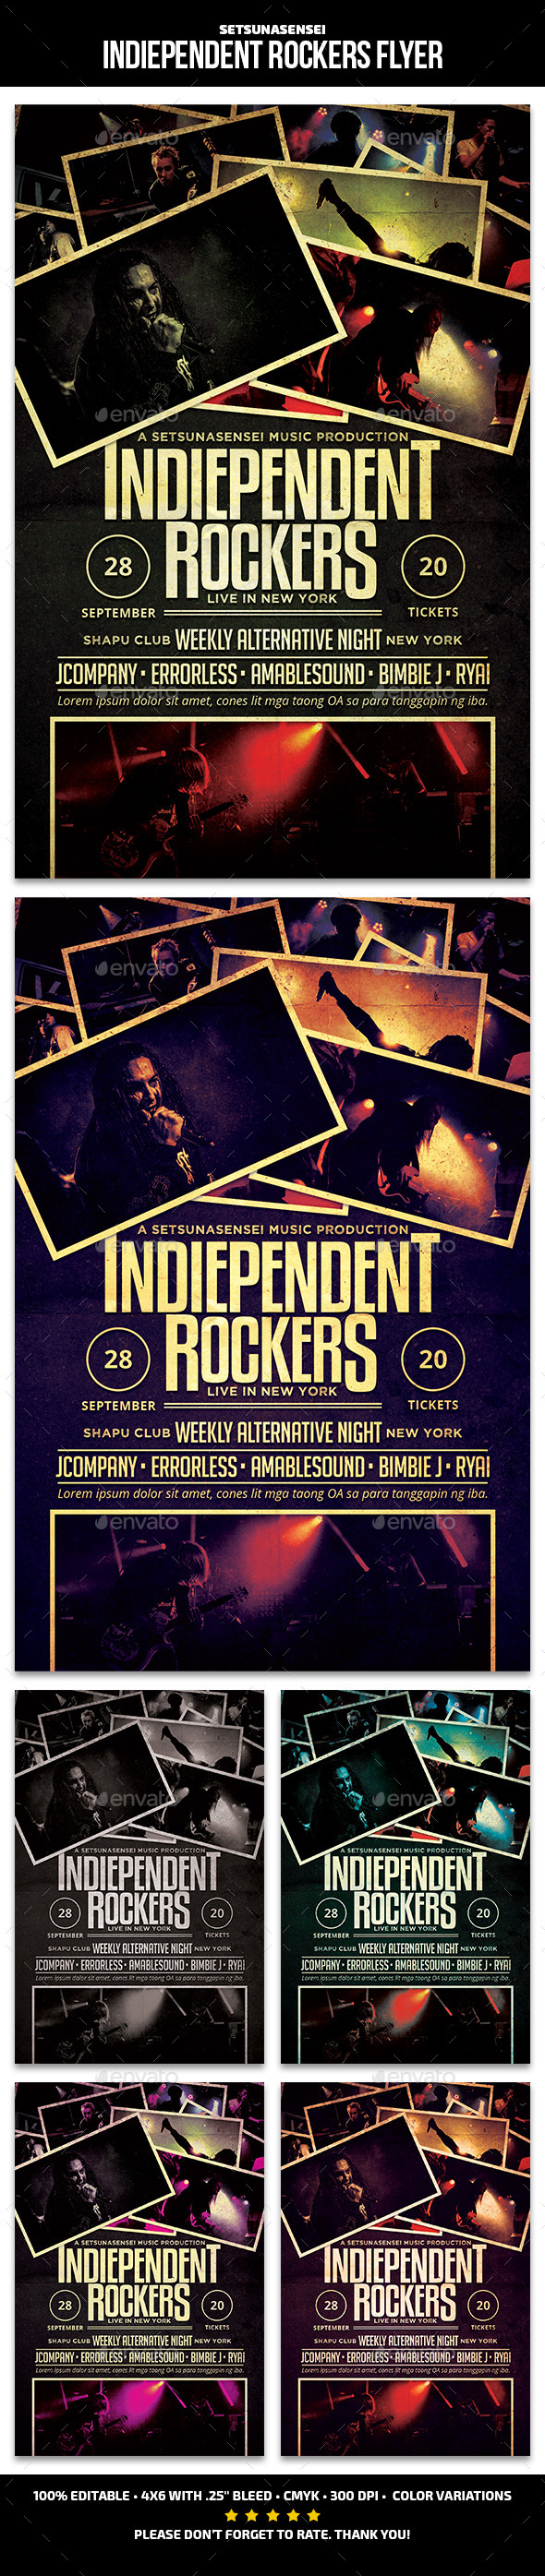 Indiependent Rockers Flyer - Concerts Events